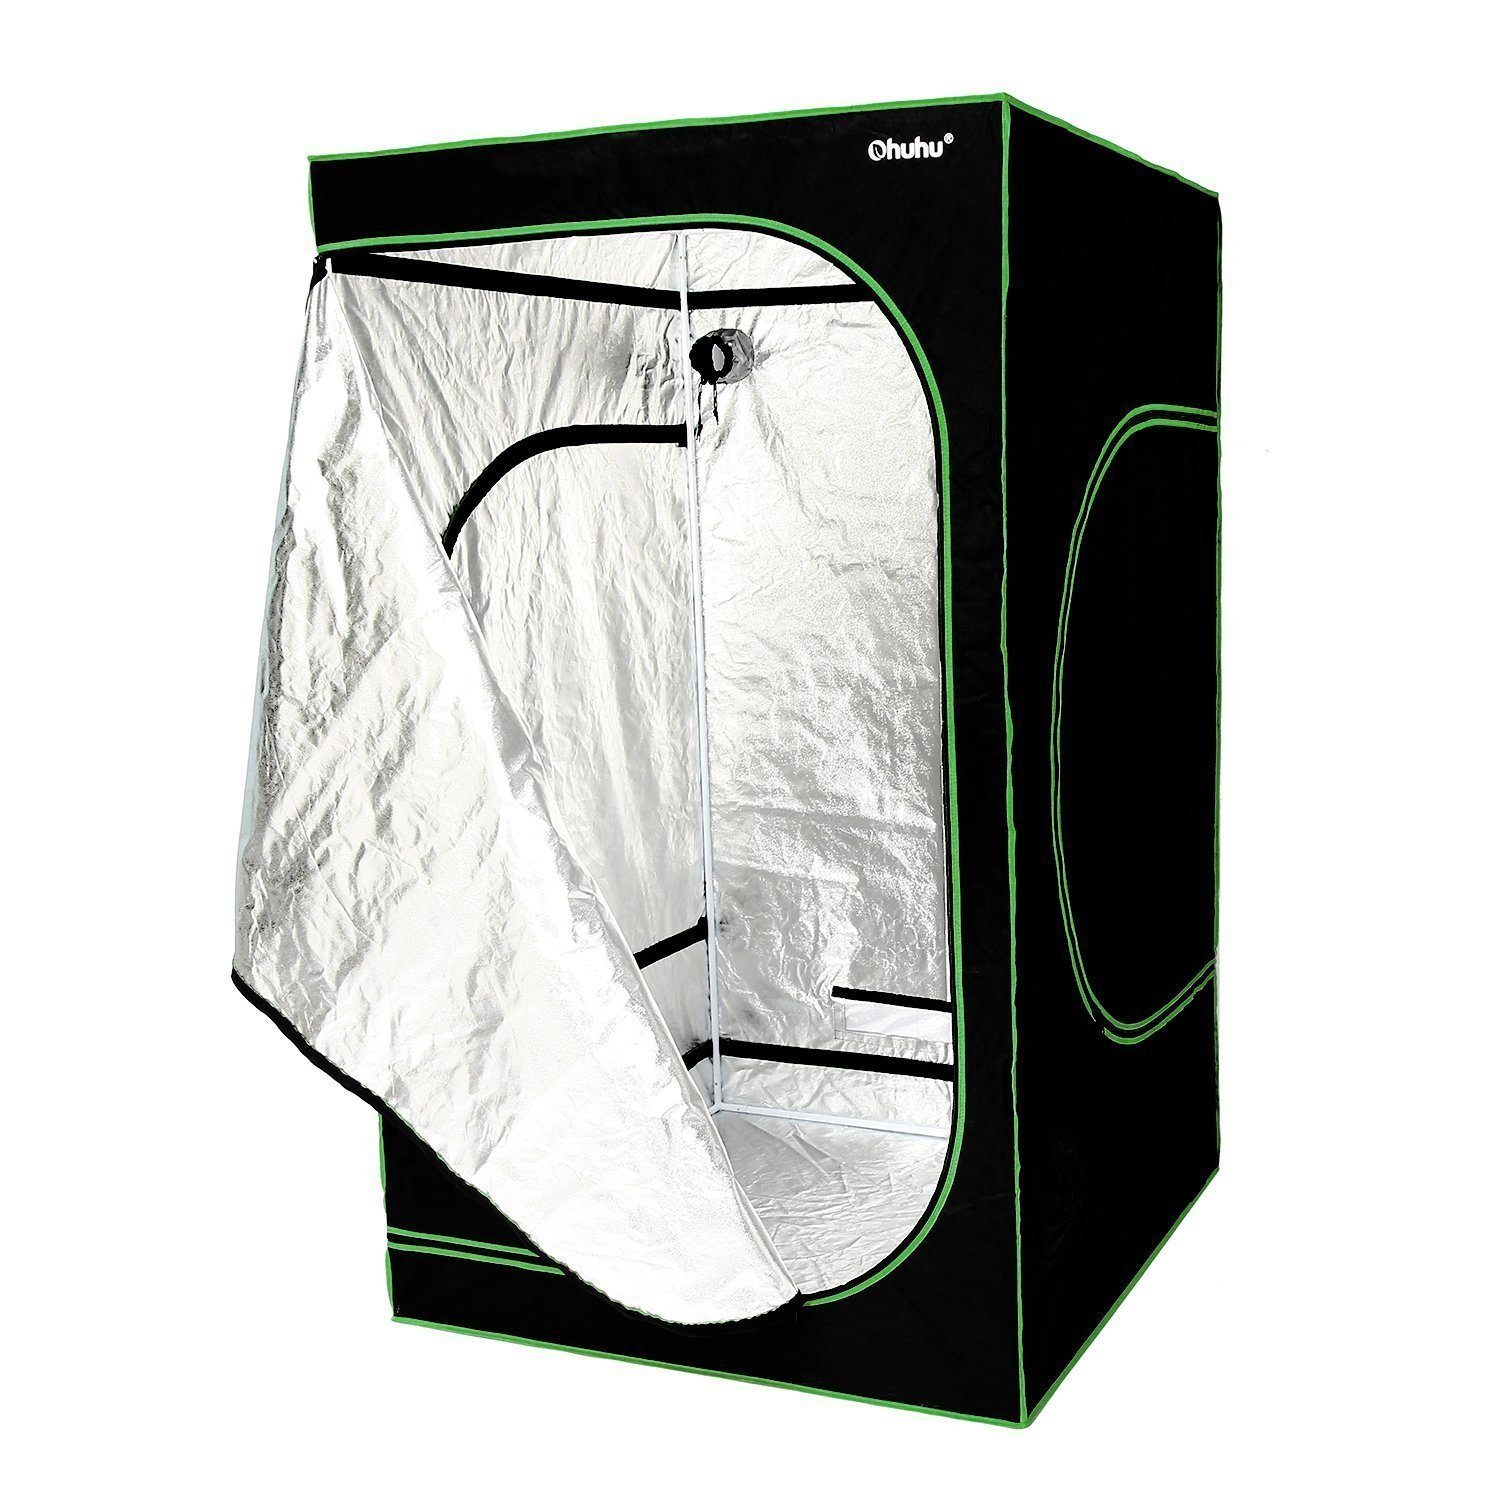 Ohuhu 48 x 48 x 80  Growing Tent Mylar Hydroponic Plant Grow  sc 1 st  Amazon.com & Plant Growing Tents | Amazon.com